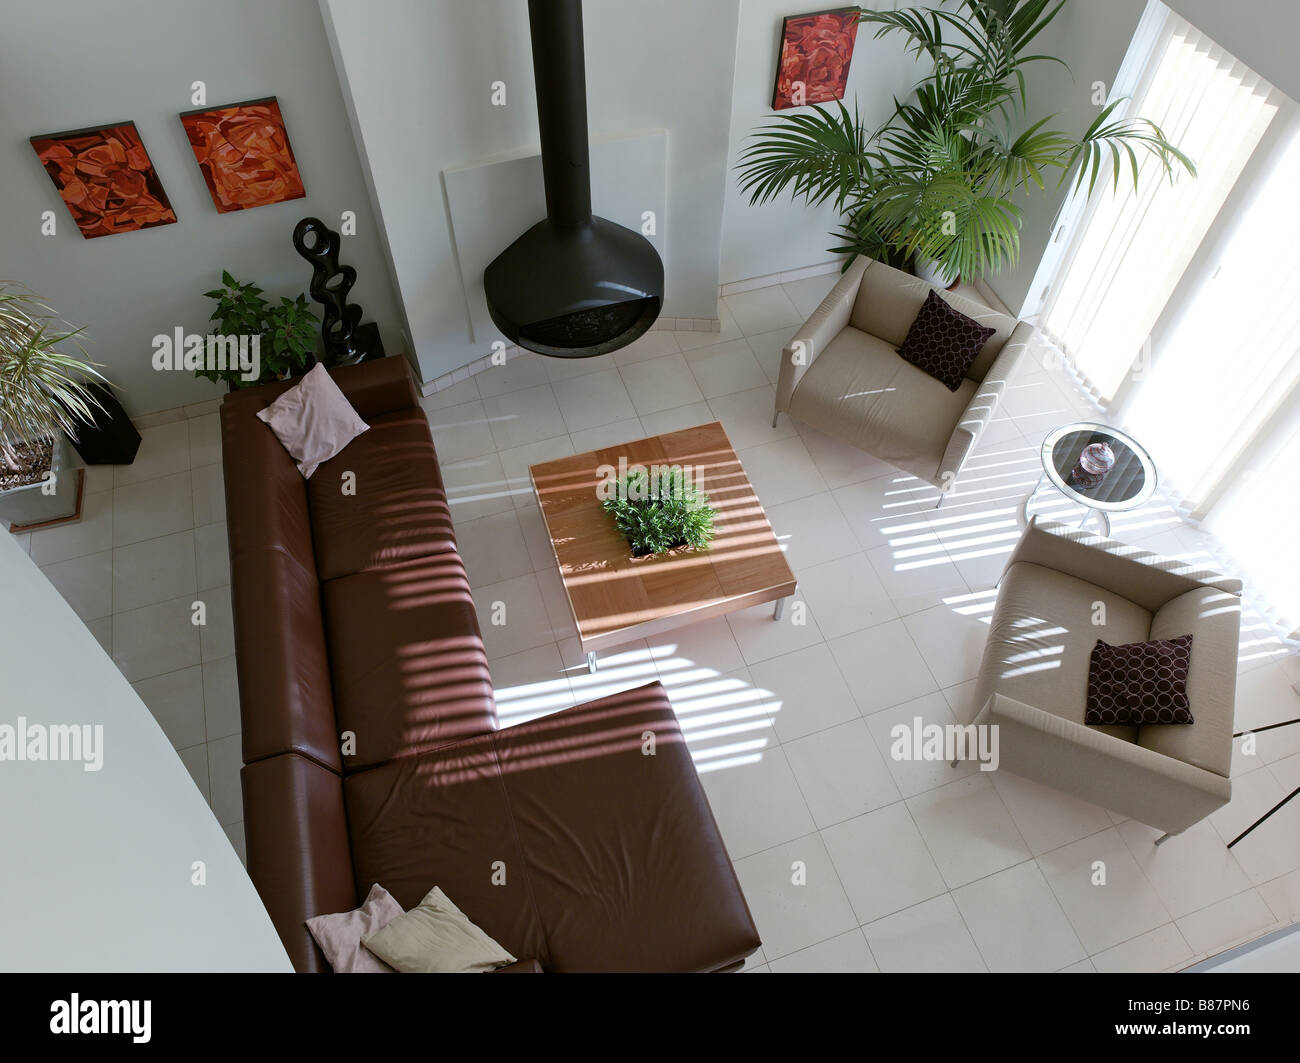 Corner sofa unique design living room sofa view modern new design - Stock Photo Birds Eye View Of Modern Living Room With Leather Corner Sofa And Contemporary Fireplace With Plants And Orange Paintings